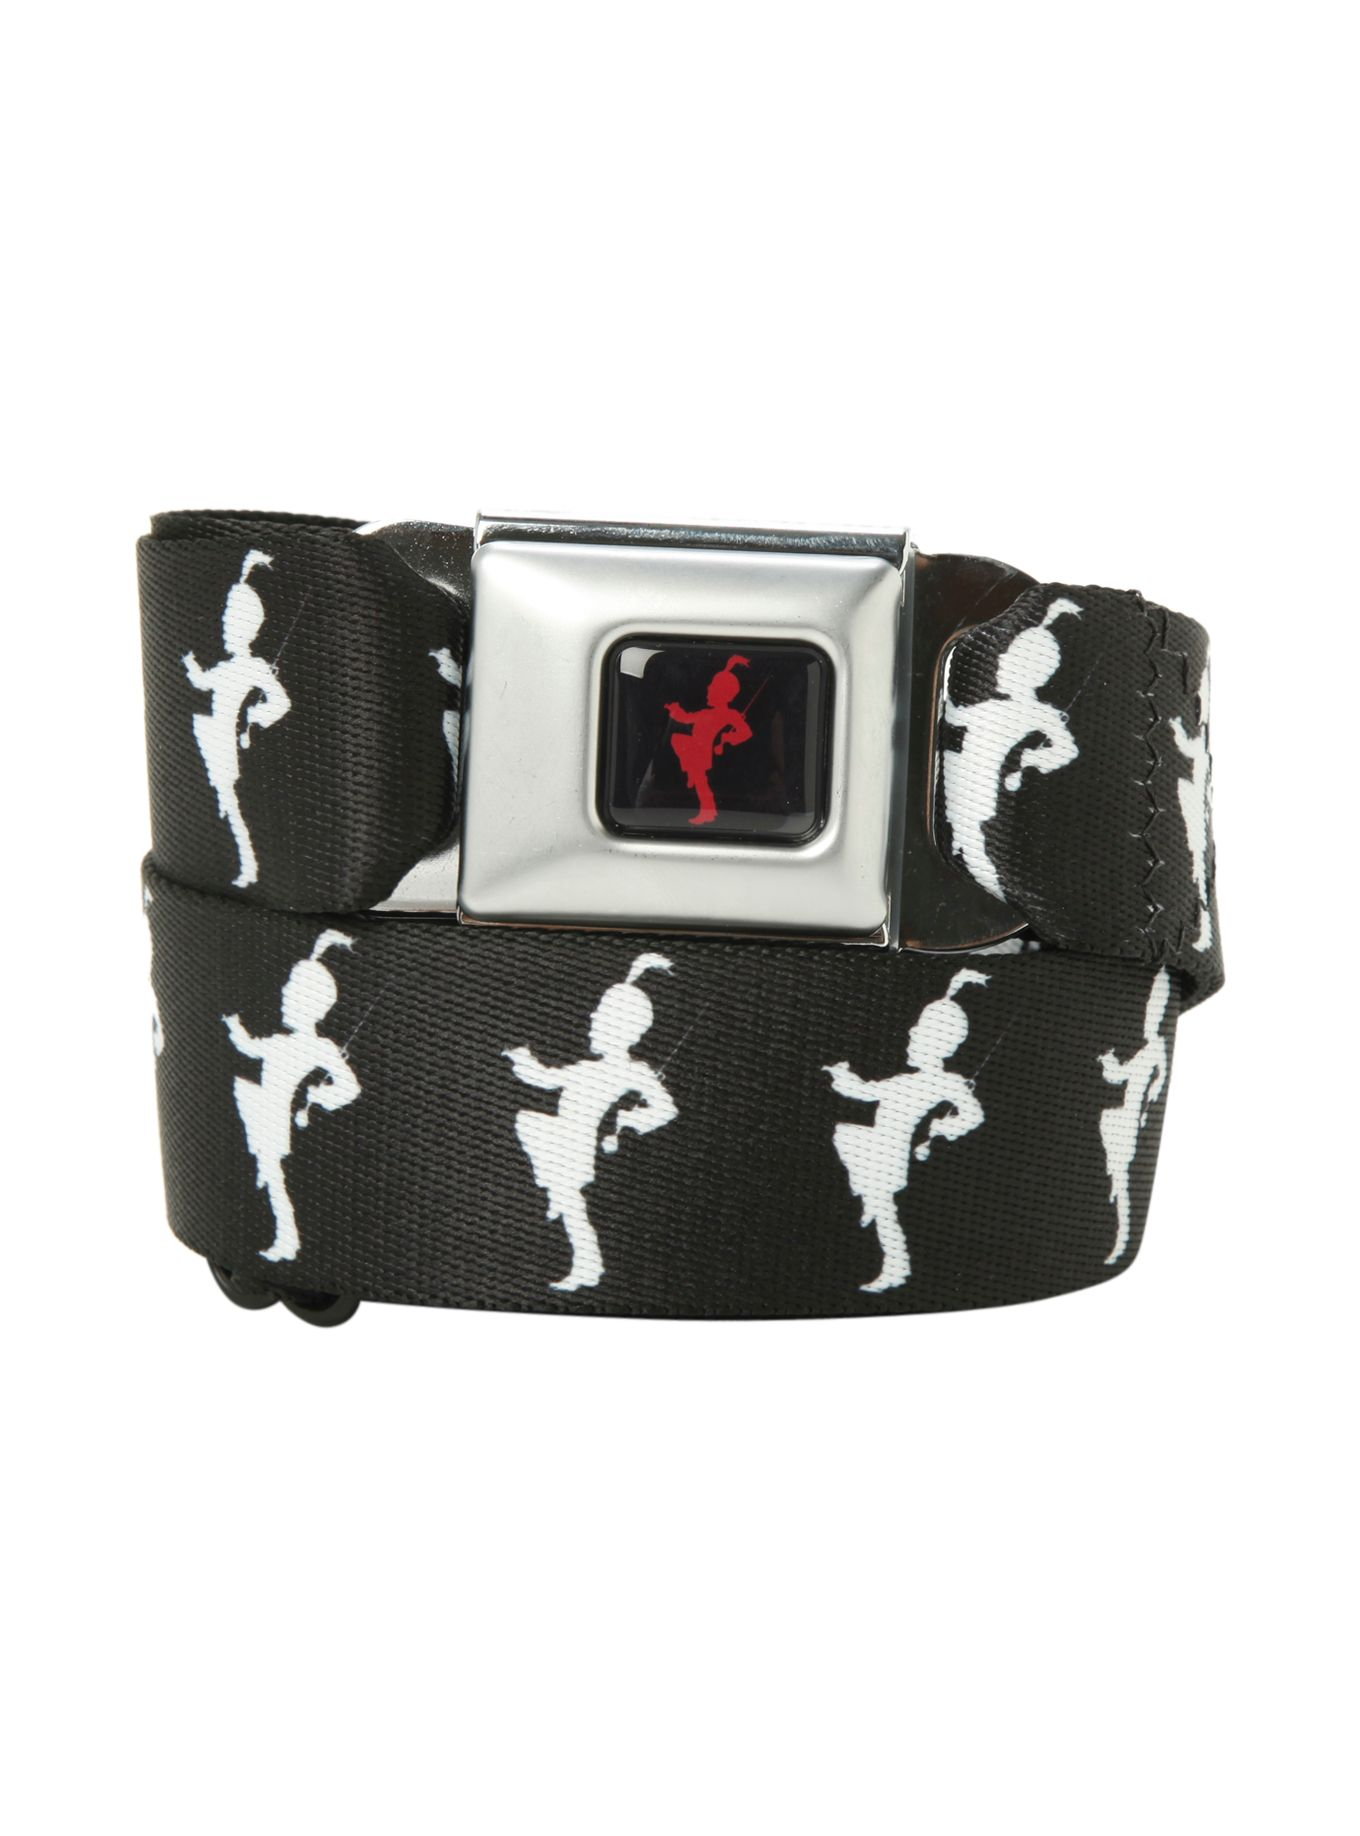 Buckle-Down Seatbelt Belt 1.5 Wide 24-38 Inches in Length Deathly Hallows Symbol Black//White